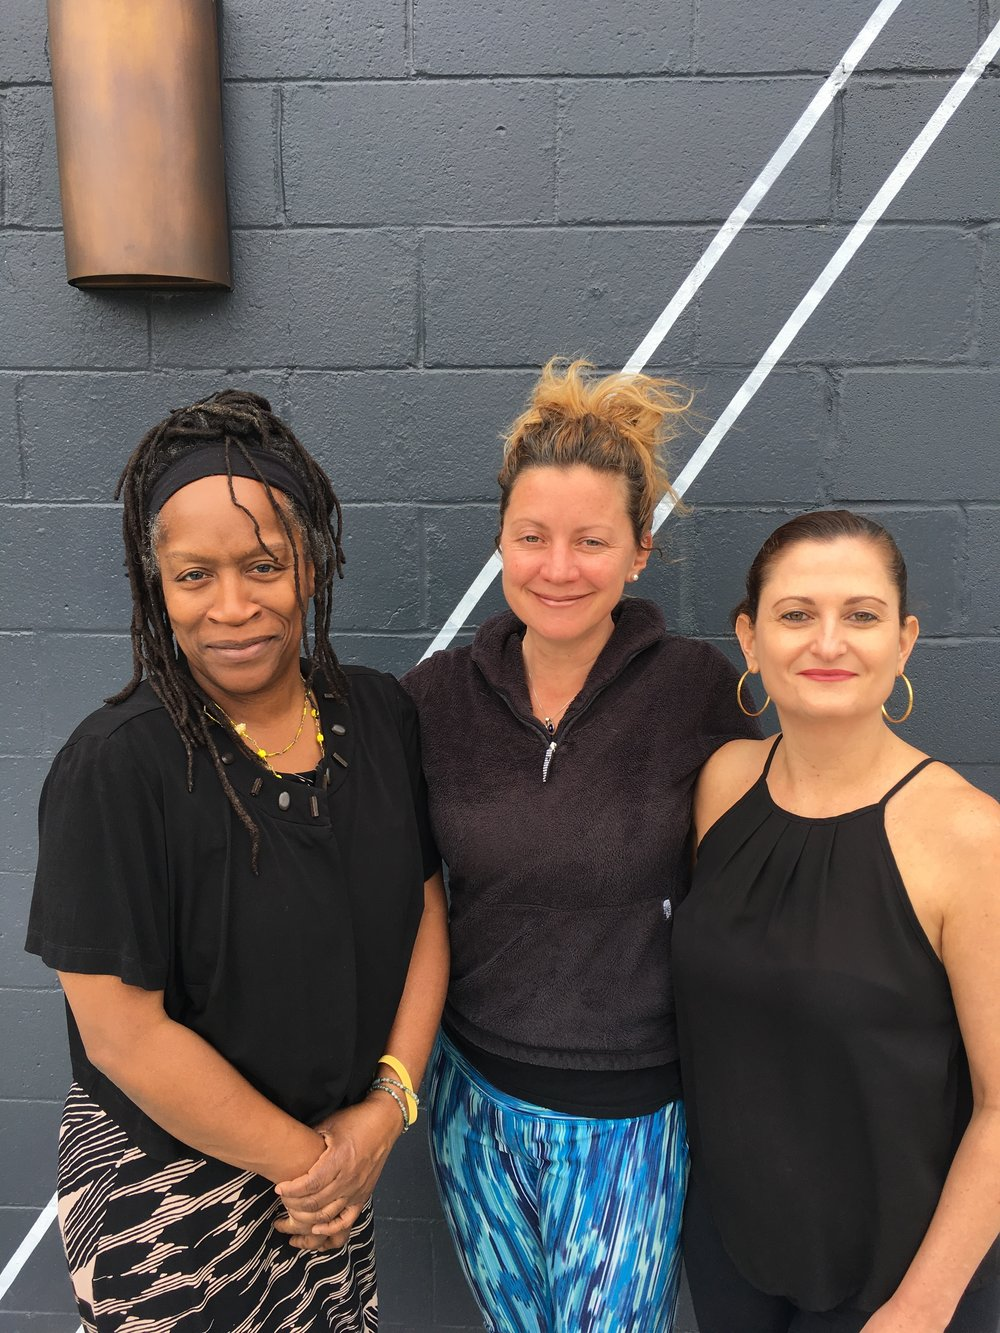 Neighborhood Revitalization & The Creative Flow Exhibition Co-Curators:  Jesse Levesque, Kara Nichols, and Gwendolyn Kelly